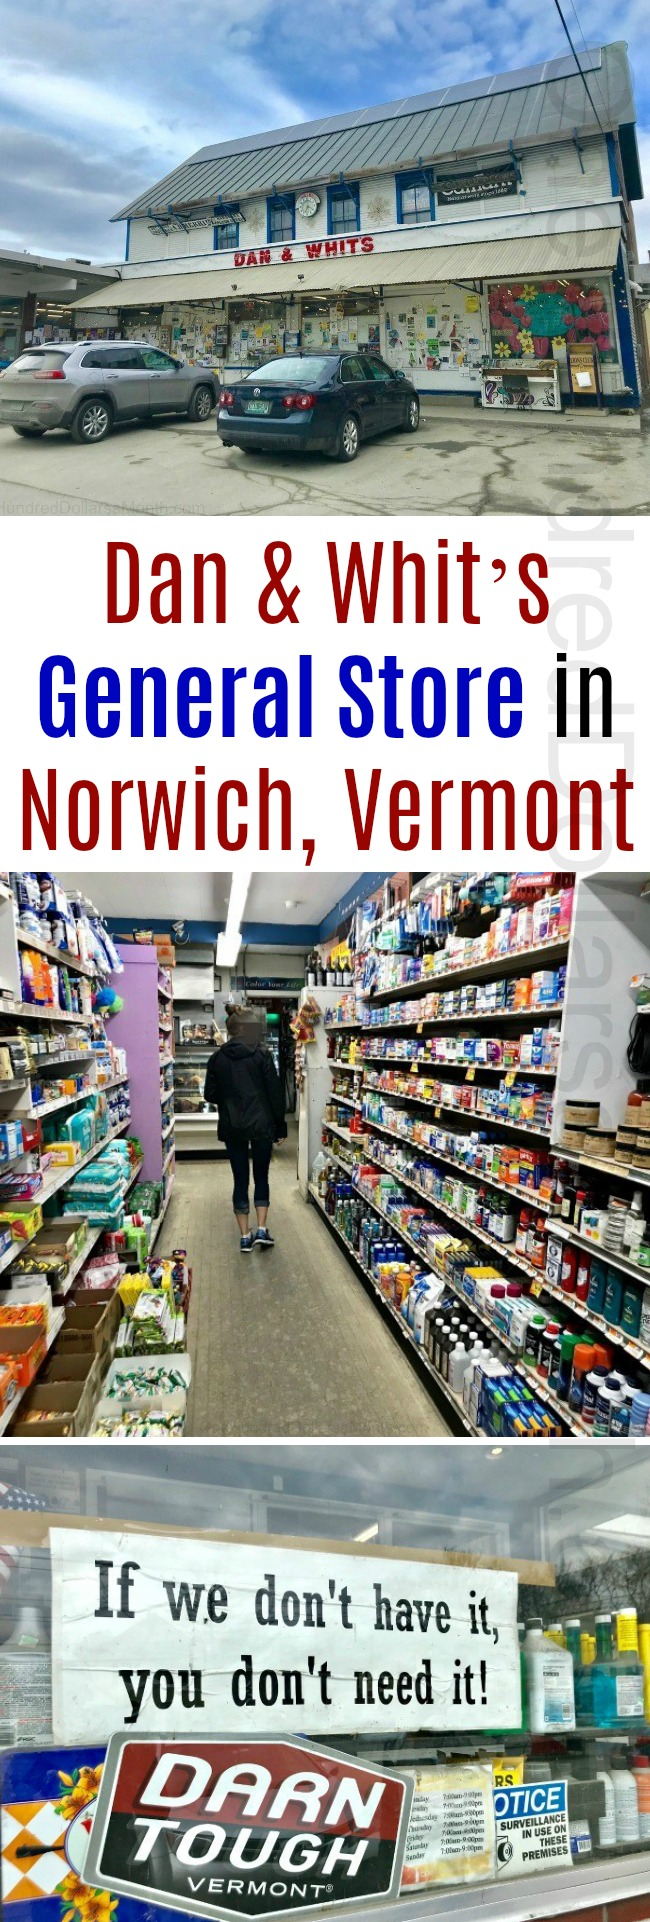 Dan & Whit's General Store in Norwich, Vermont